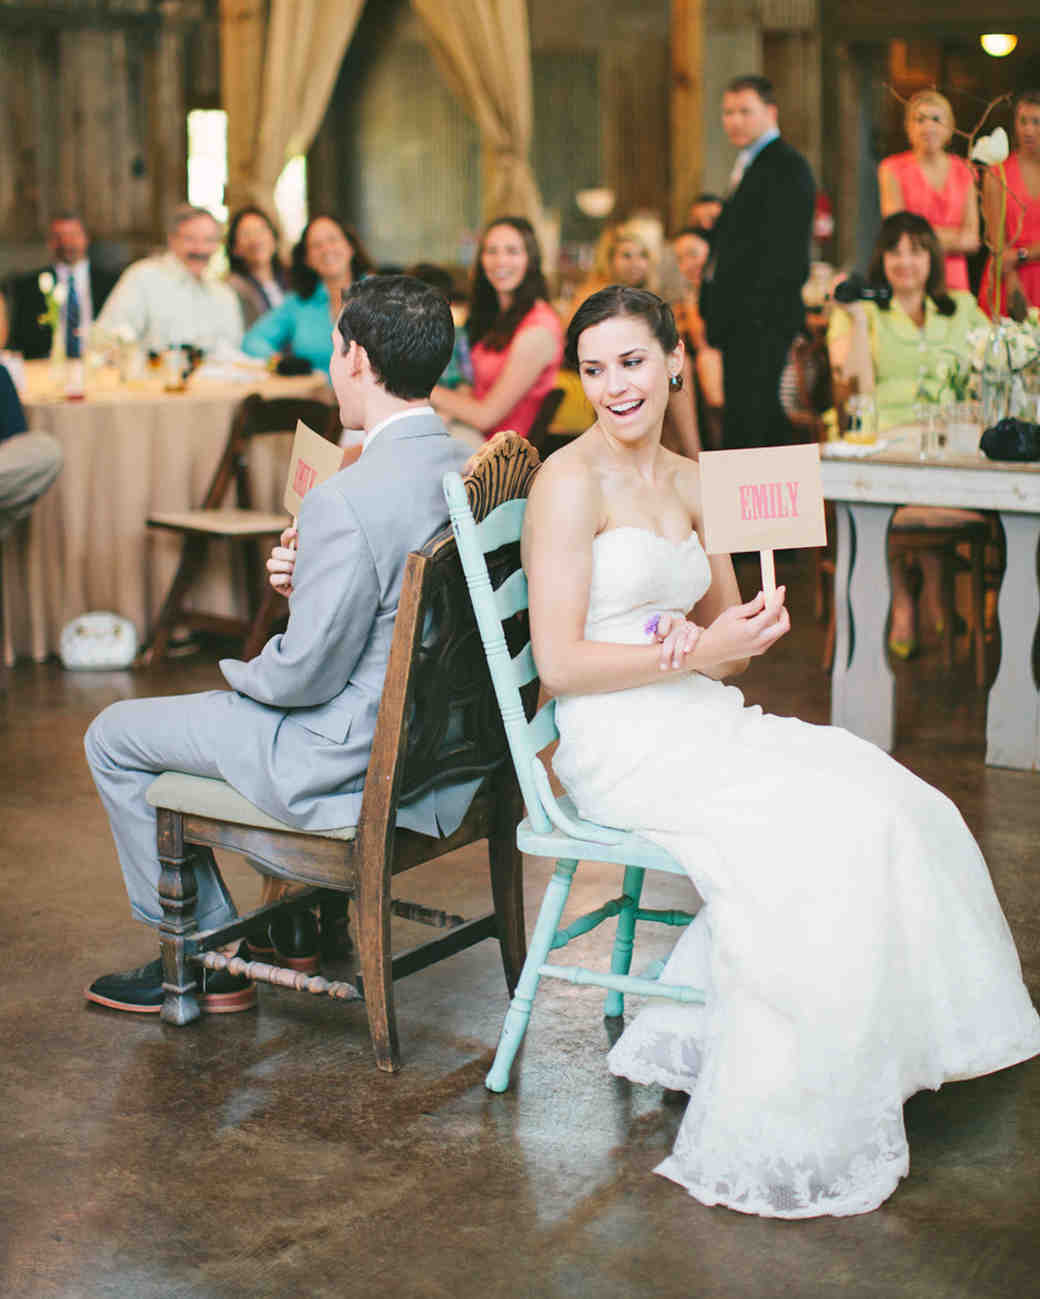 Fun Wedding Games That'll Keep Guests Laughing